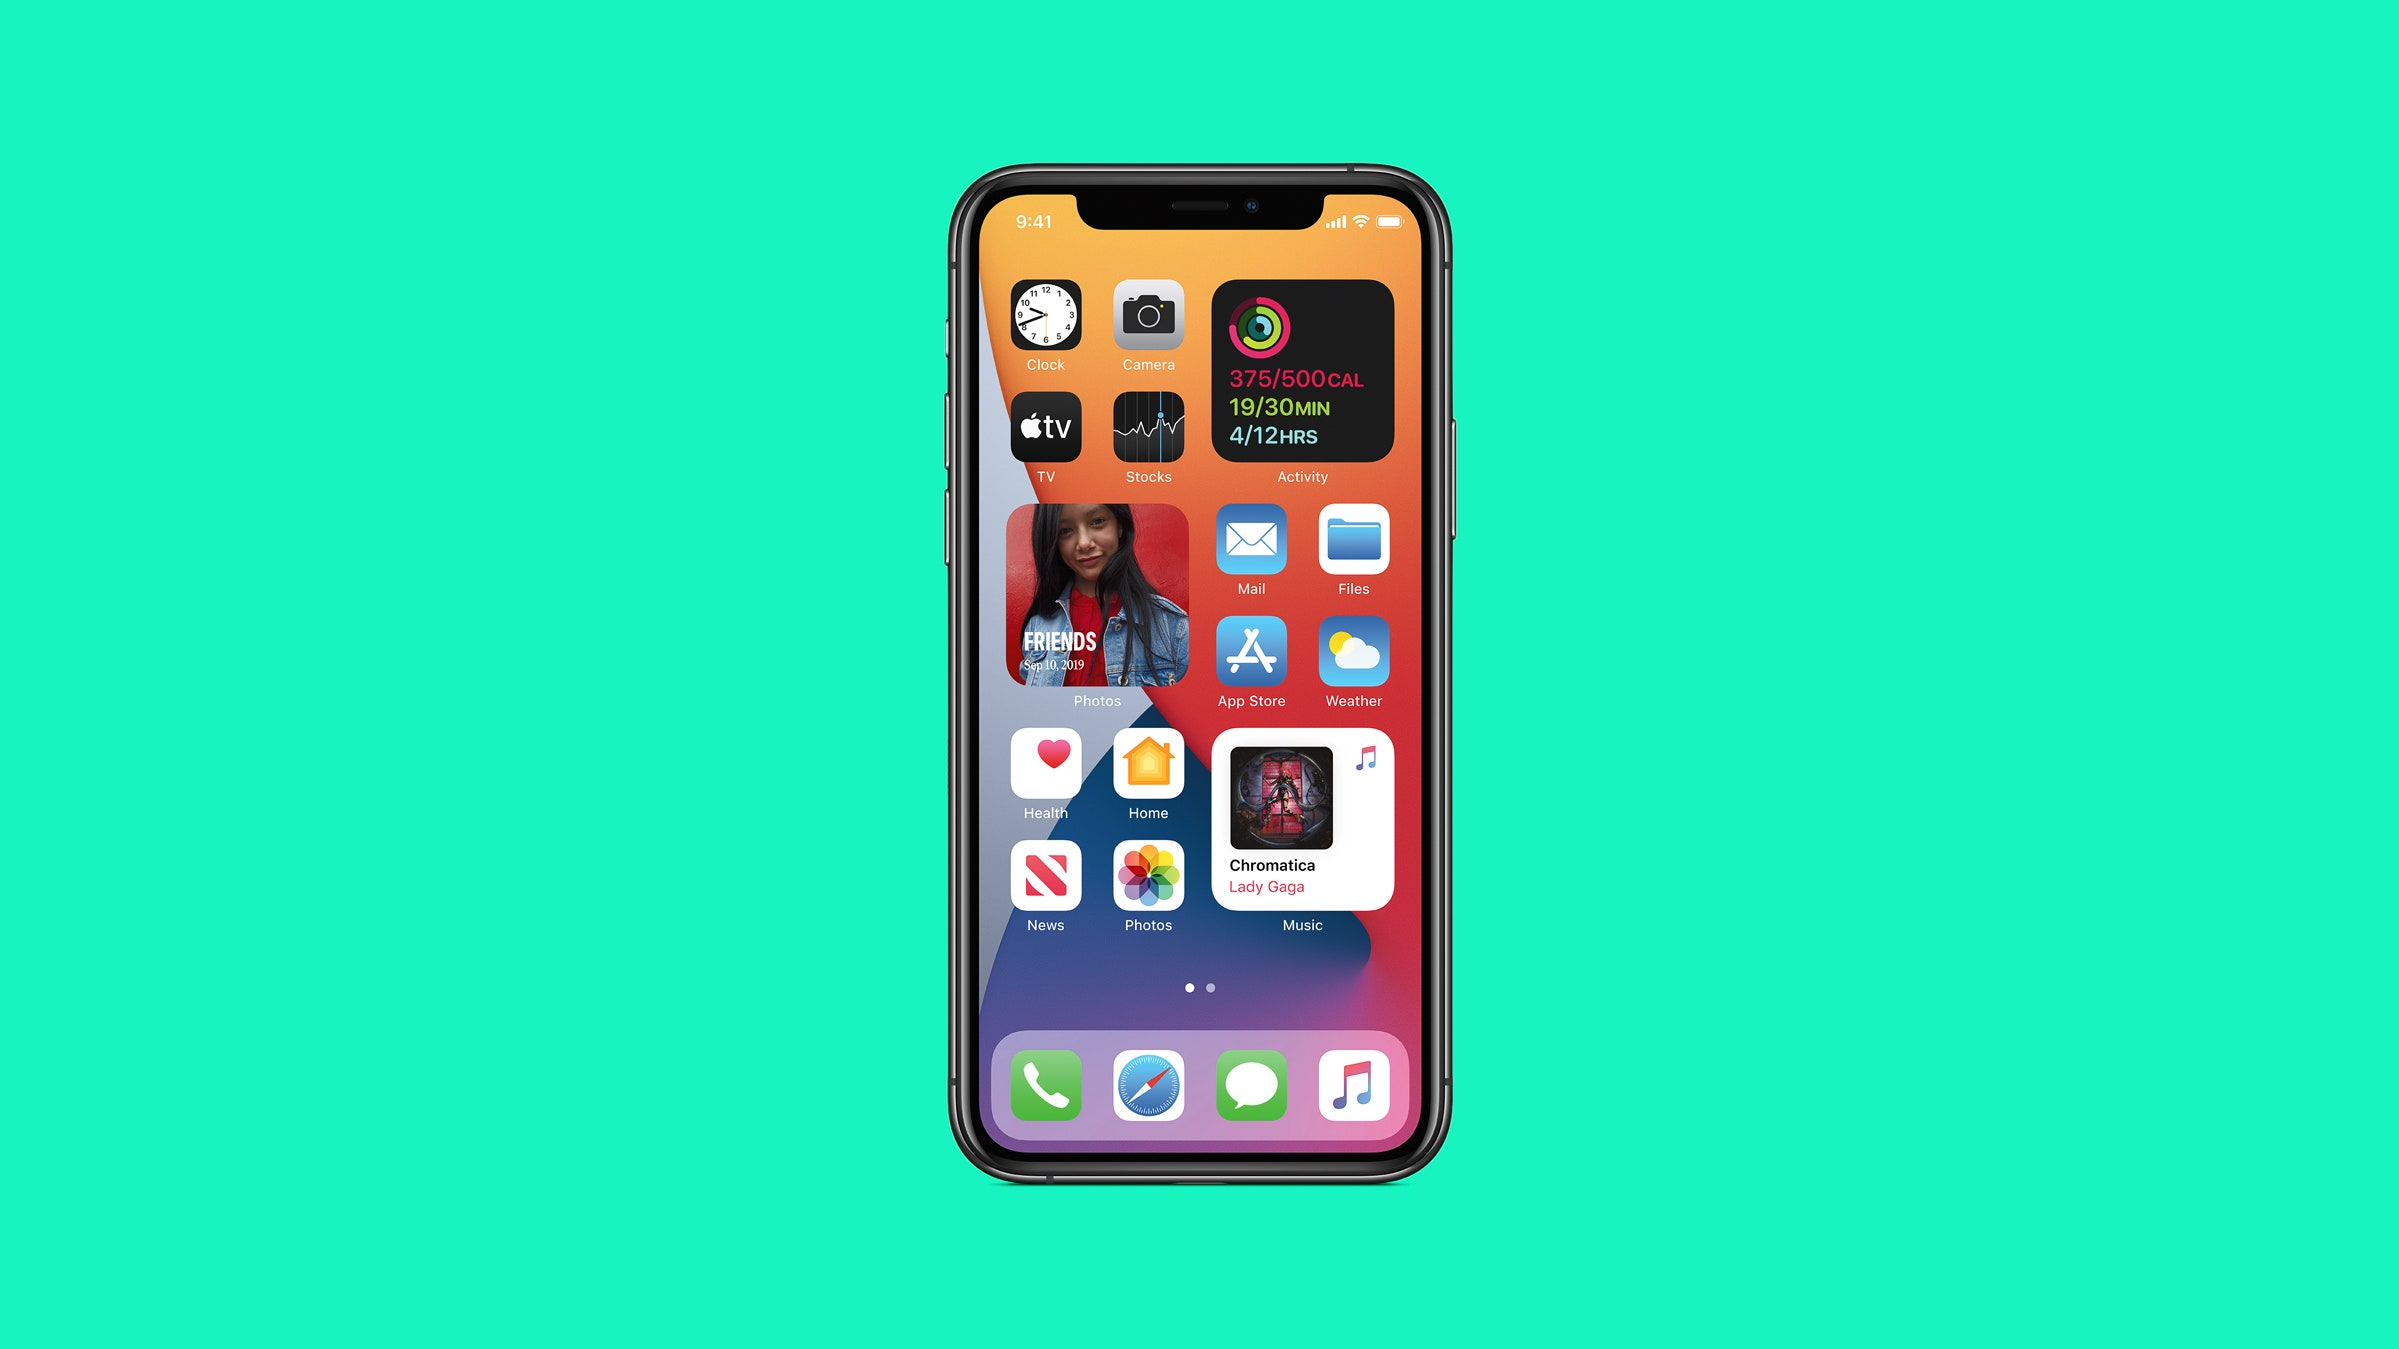 iOS 14 makes the iPhones look like Android Devices